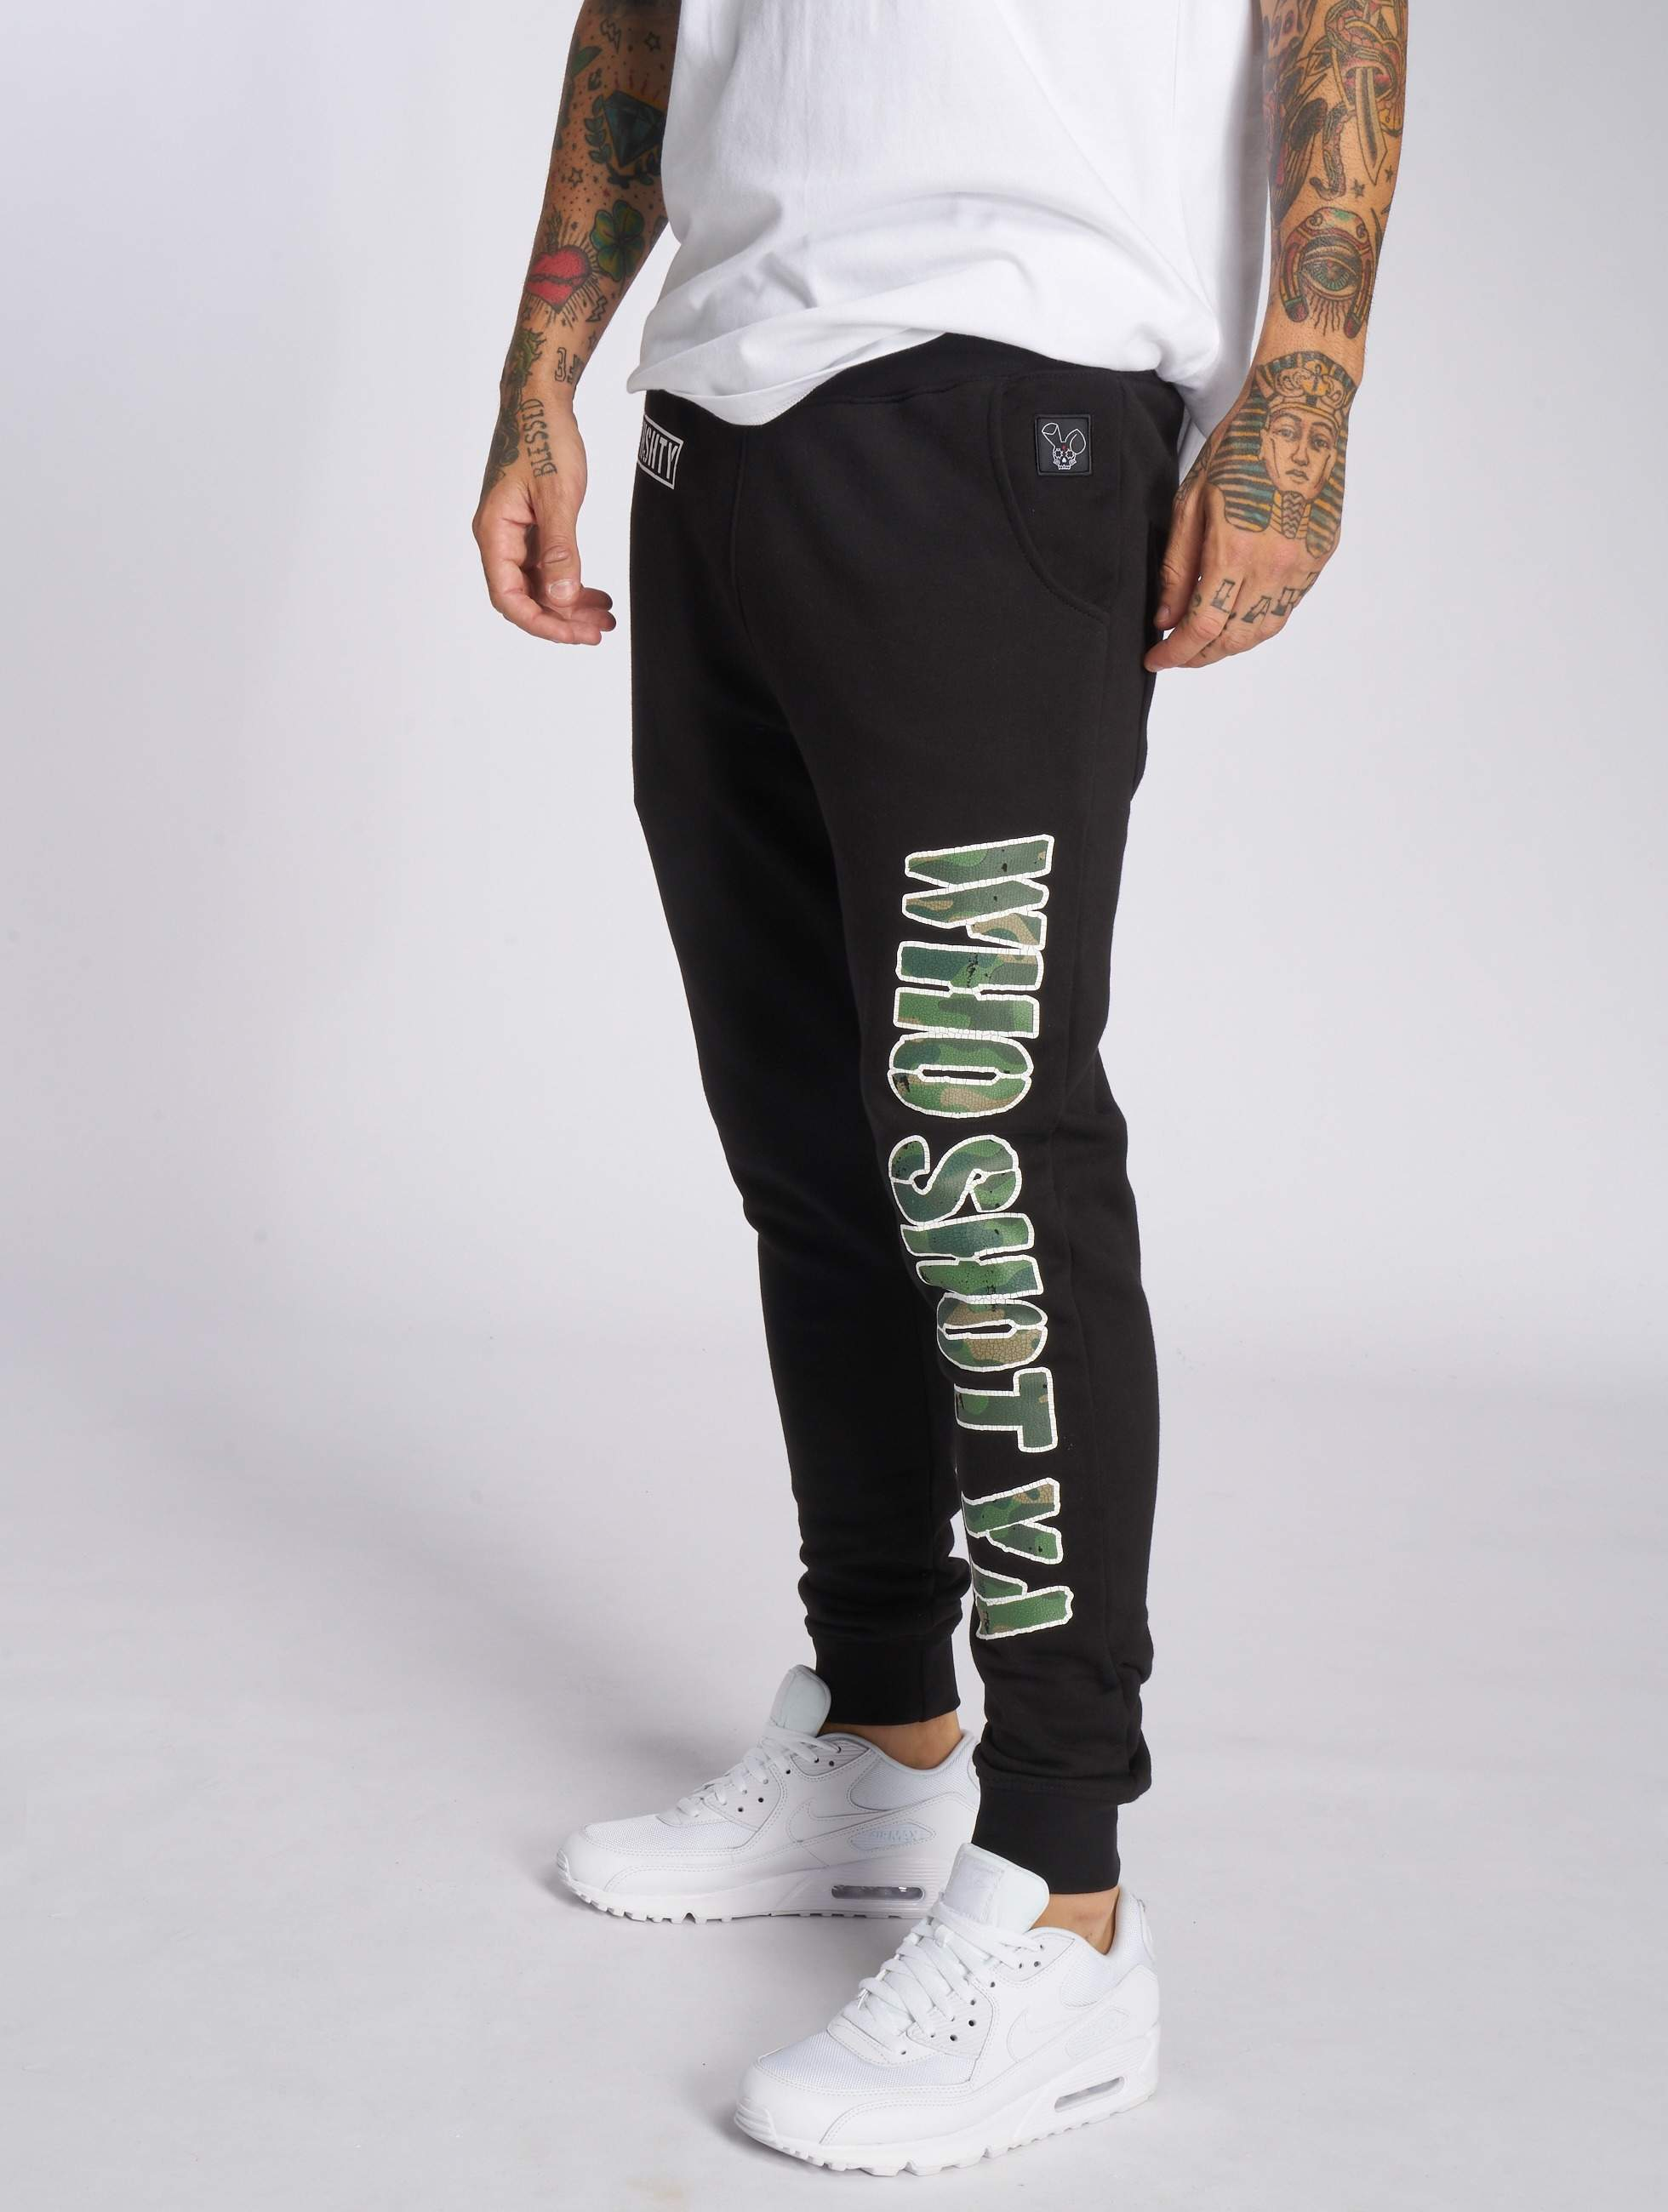 Who Shot Ya? / Sweat Pant Camou Funk in black 2XL